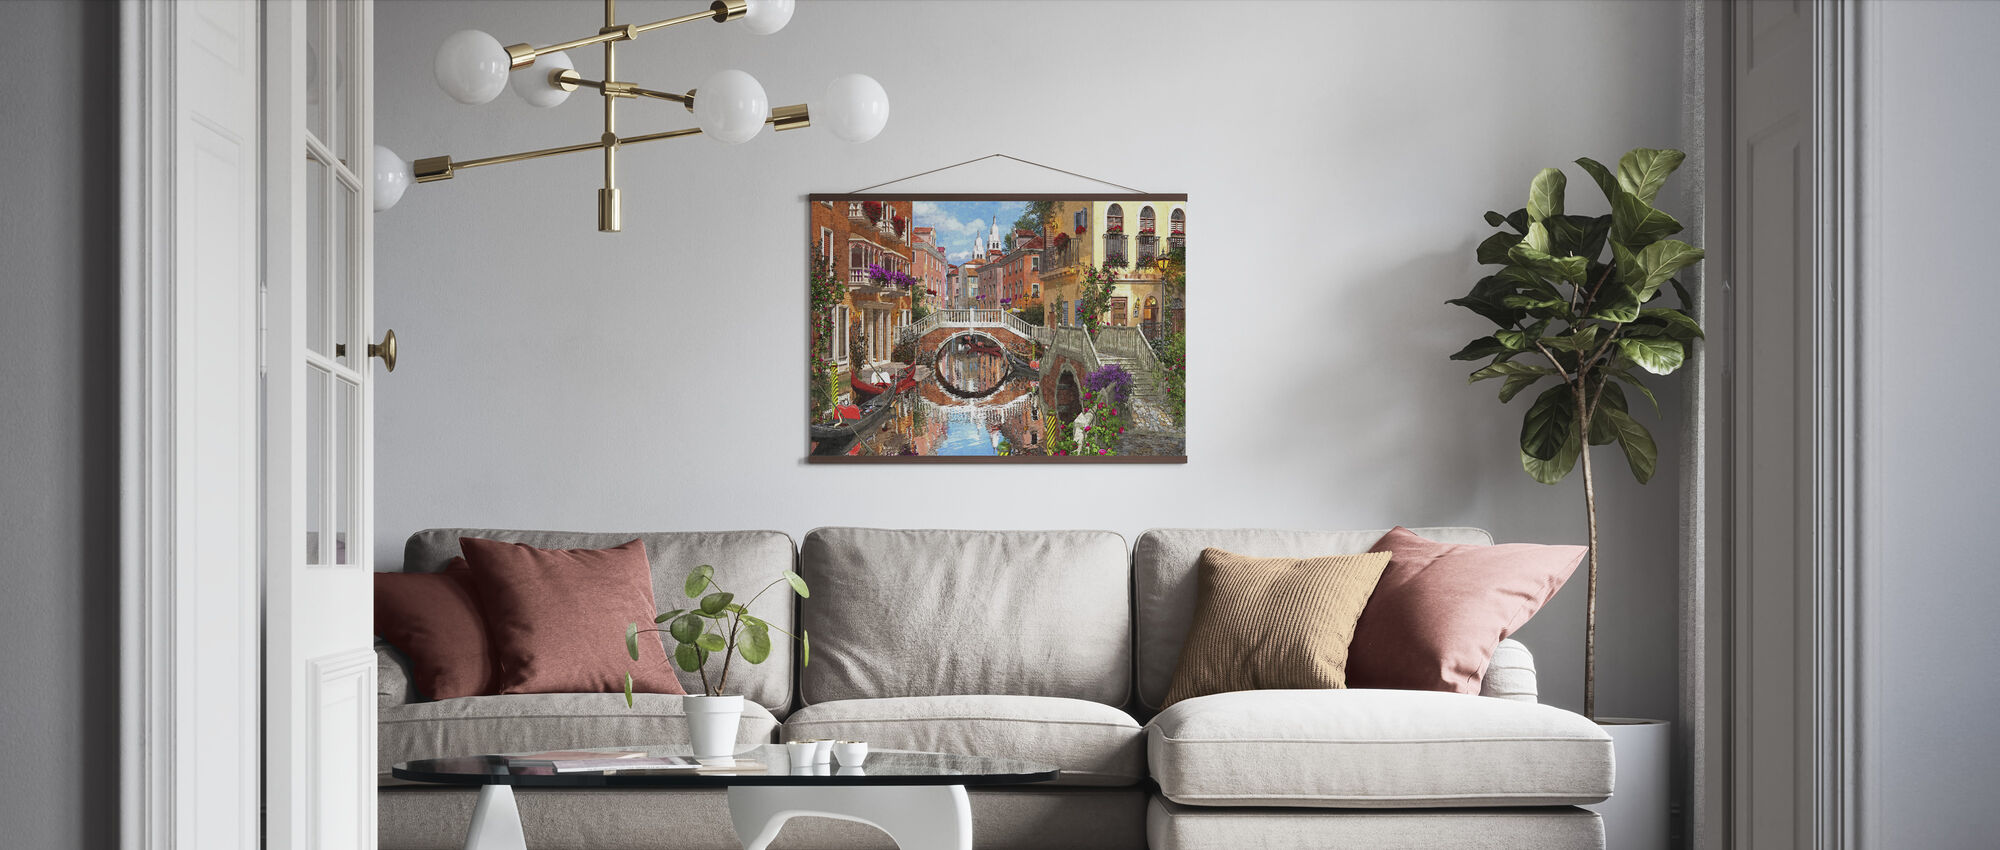 Venetian Waterway - Poster - Living Room